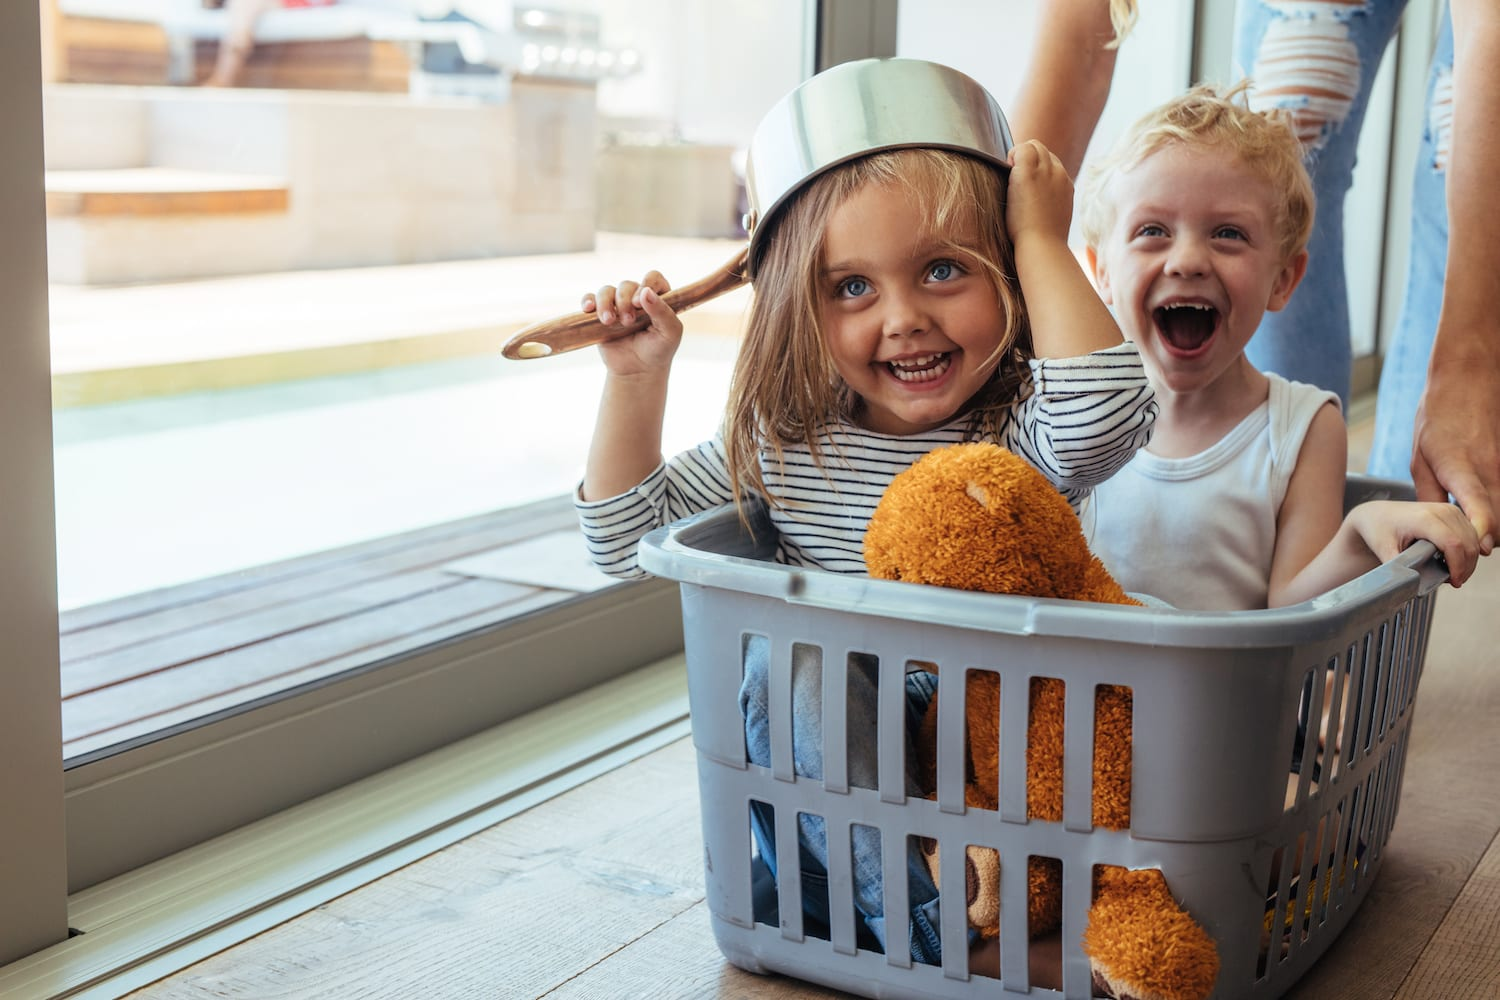 Kids rides in a laundry basket | Dr.Michelle